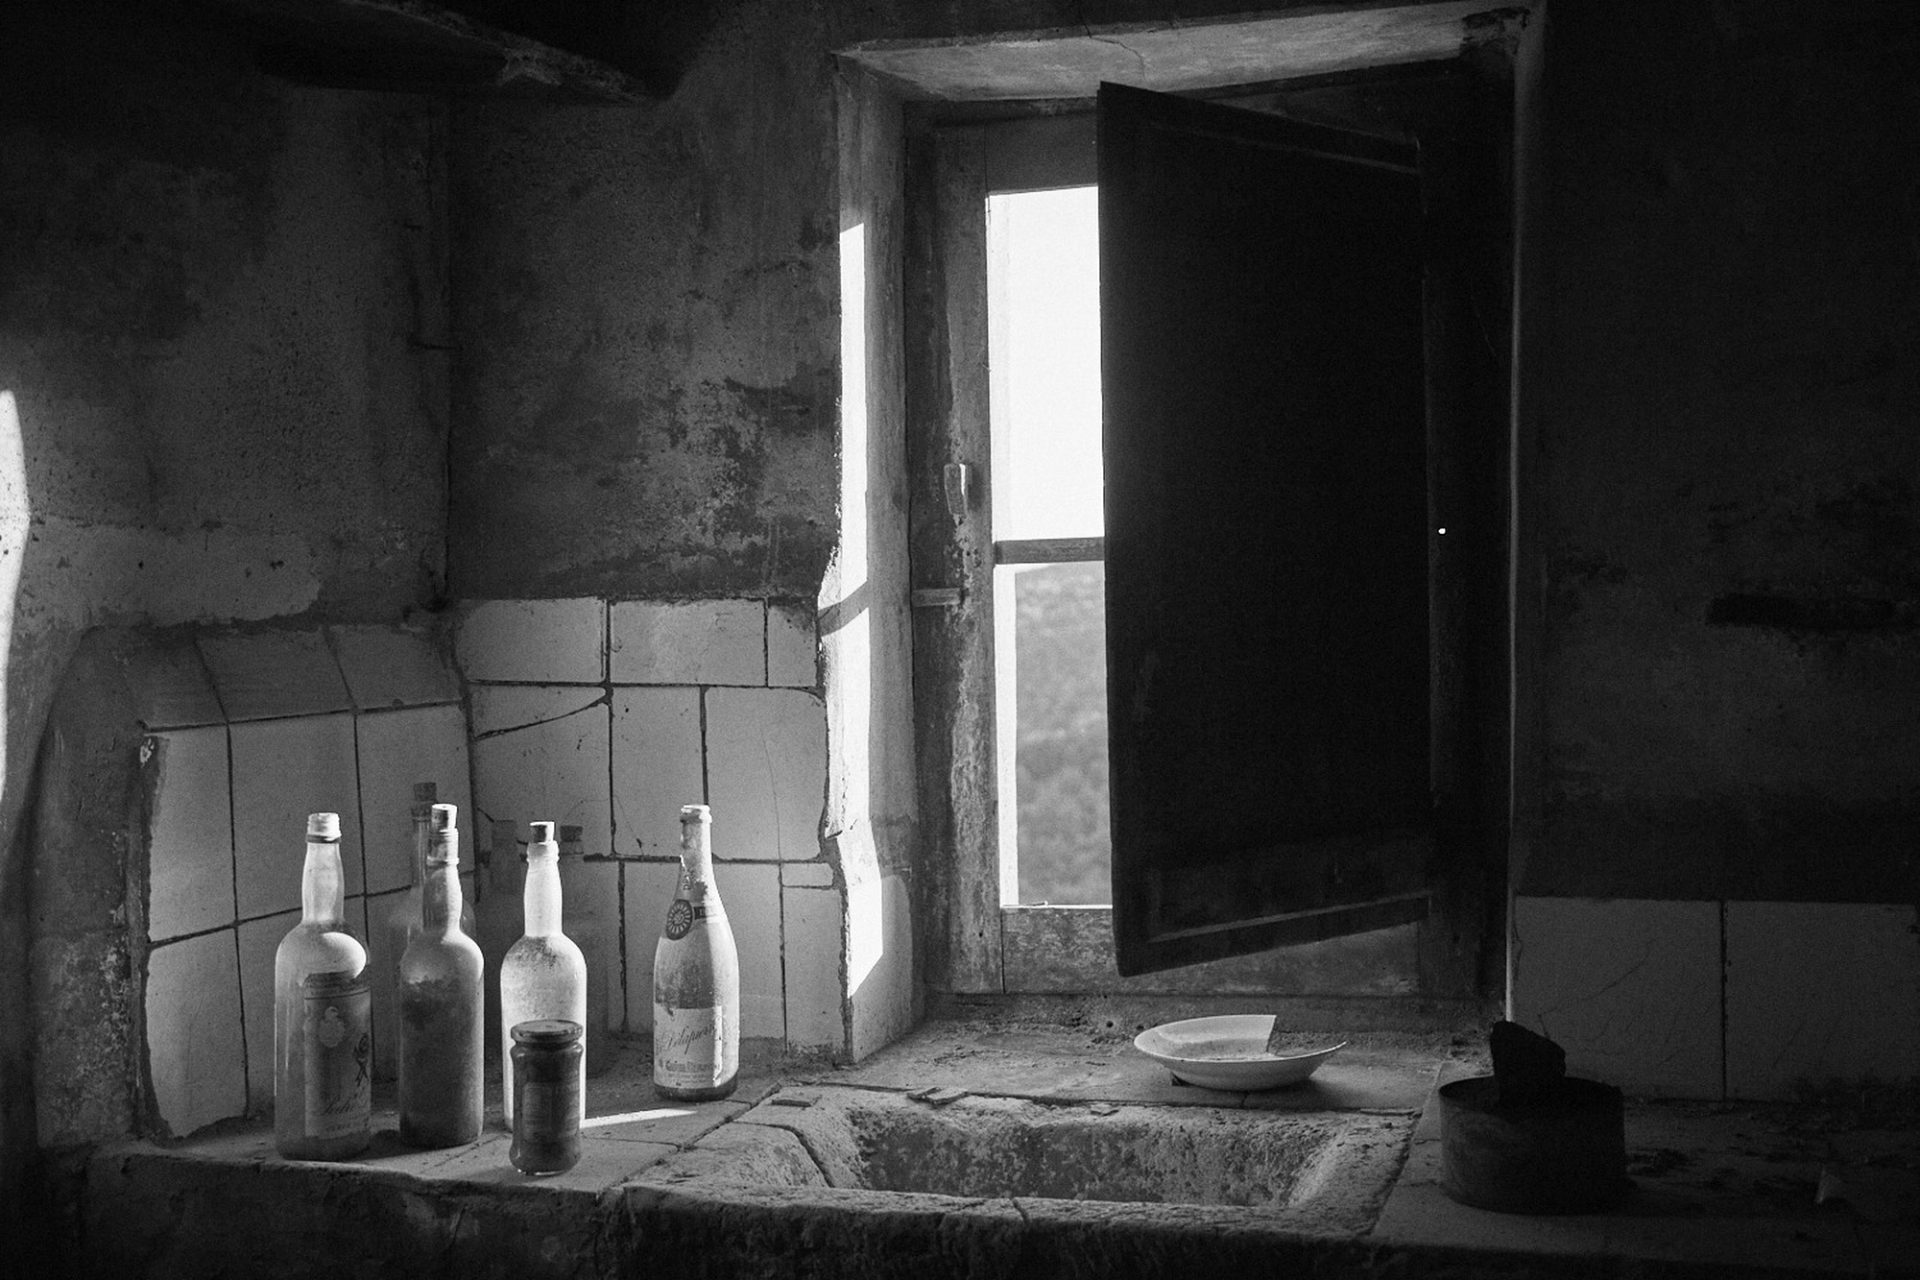 A window is open letting the lighting some old glass bottles in an abandon kitchen. Black and white photography. Nostalgic.